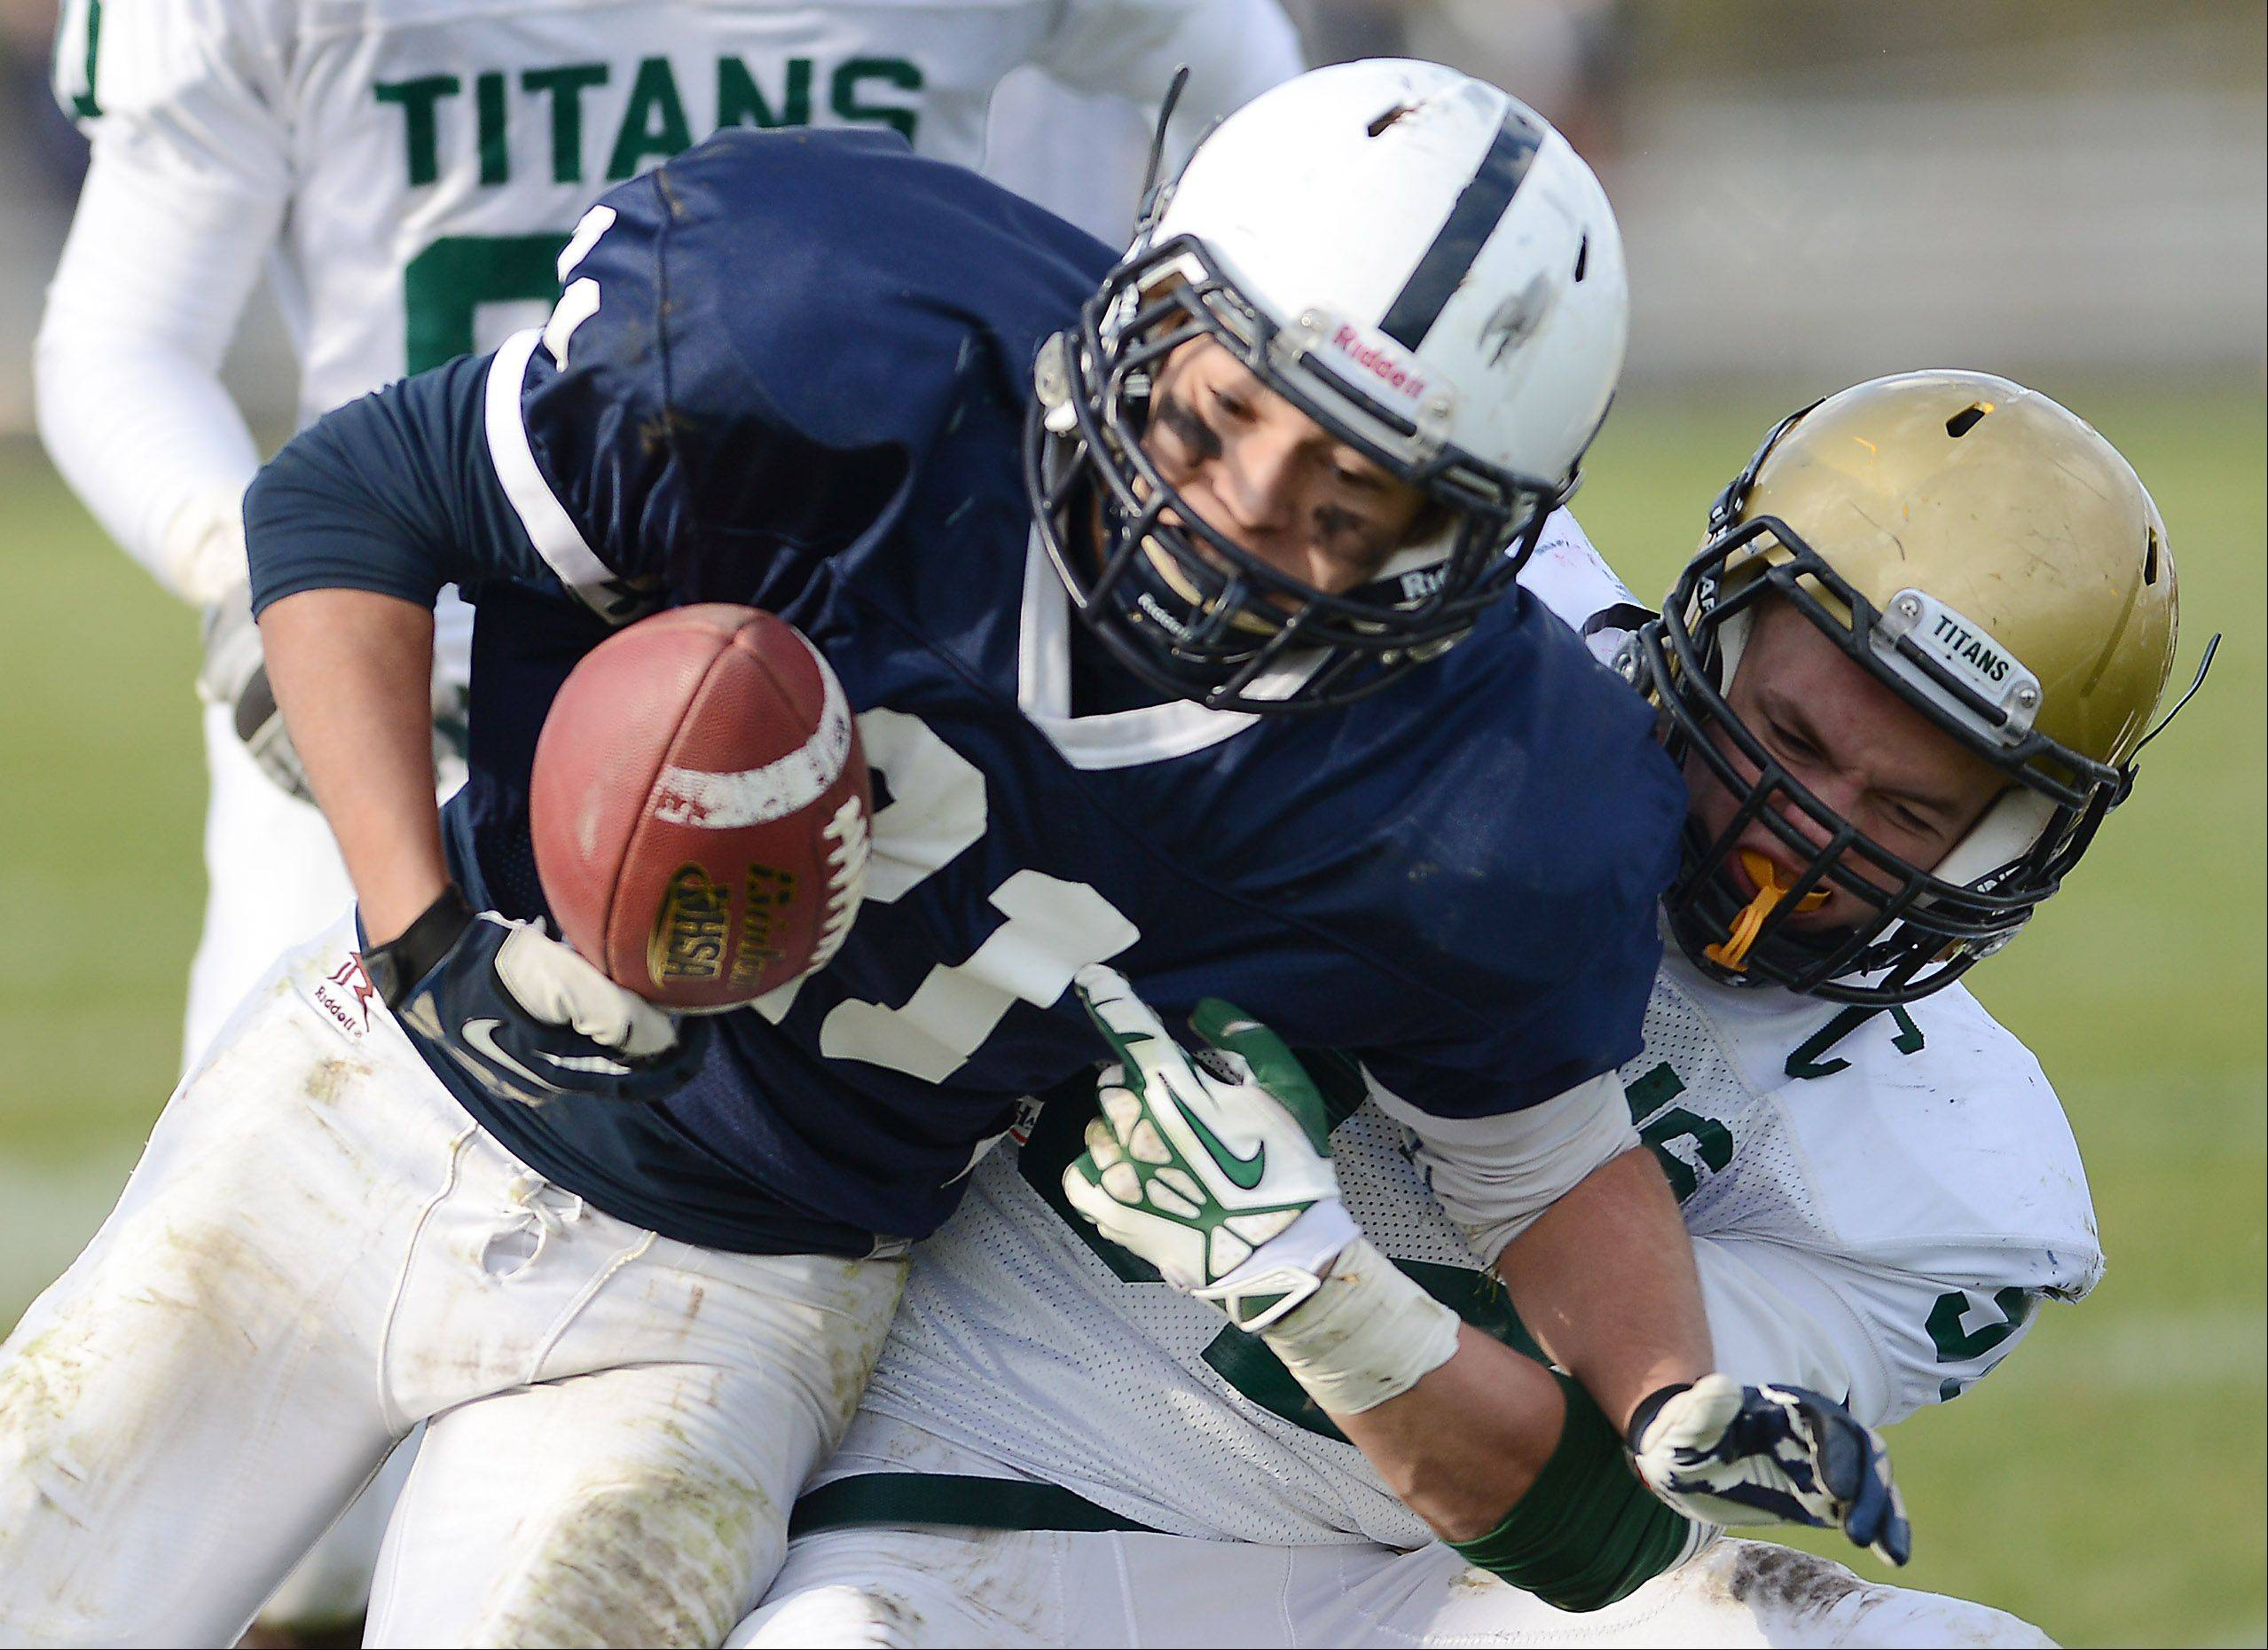 Cary-Grove's Zach McQuade (21) has the ball stripped by Boylan Catholic's Graham Smolirski (32) during Saturday's game in Cary.